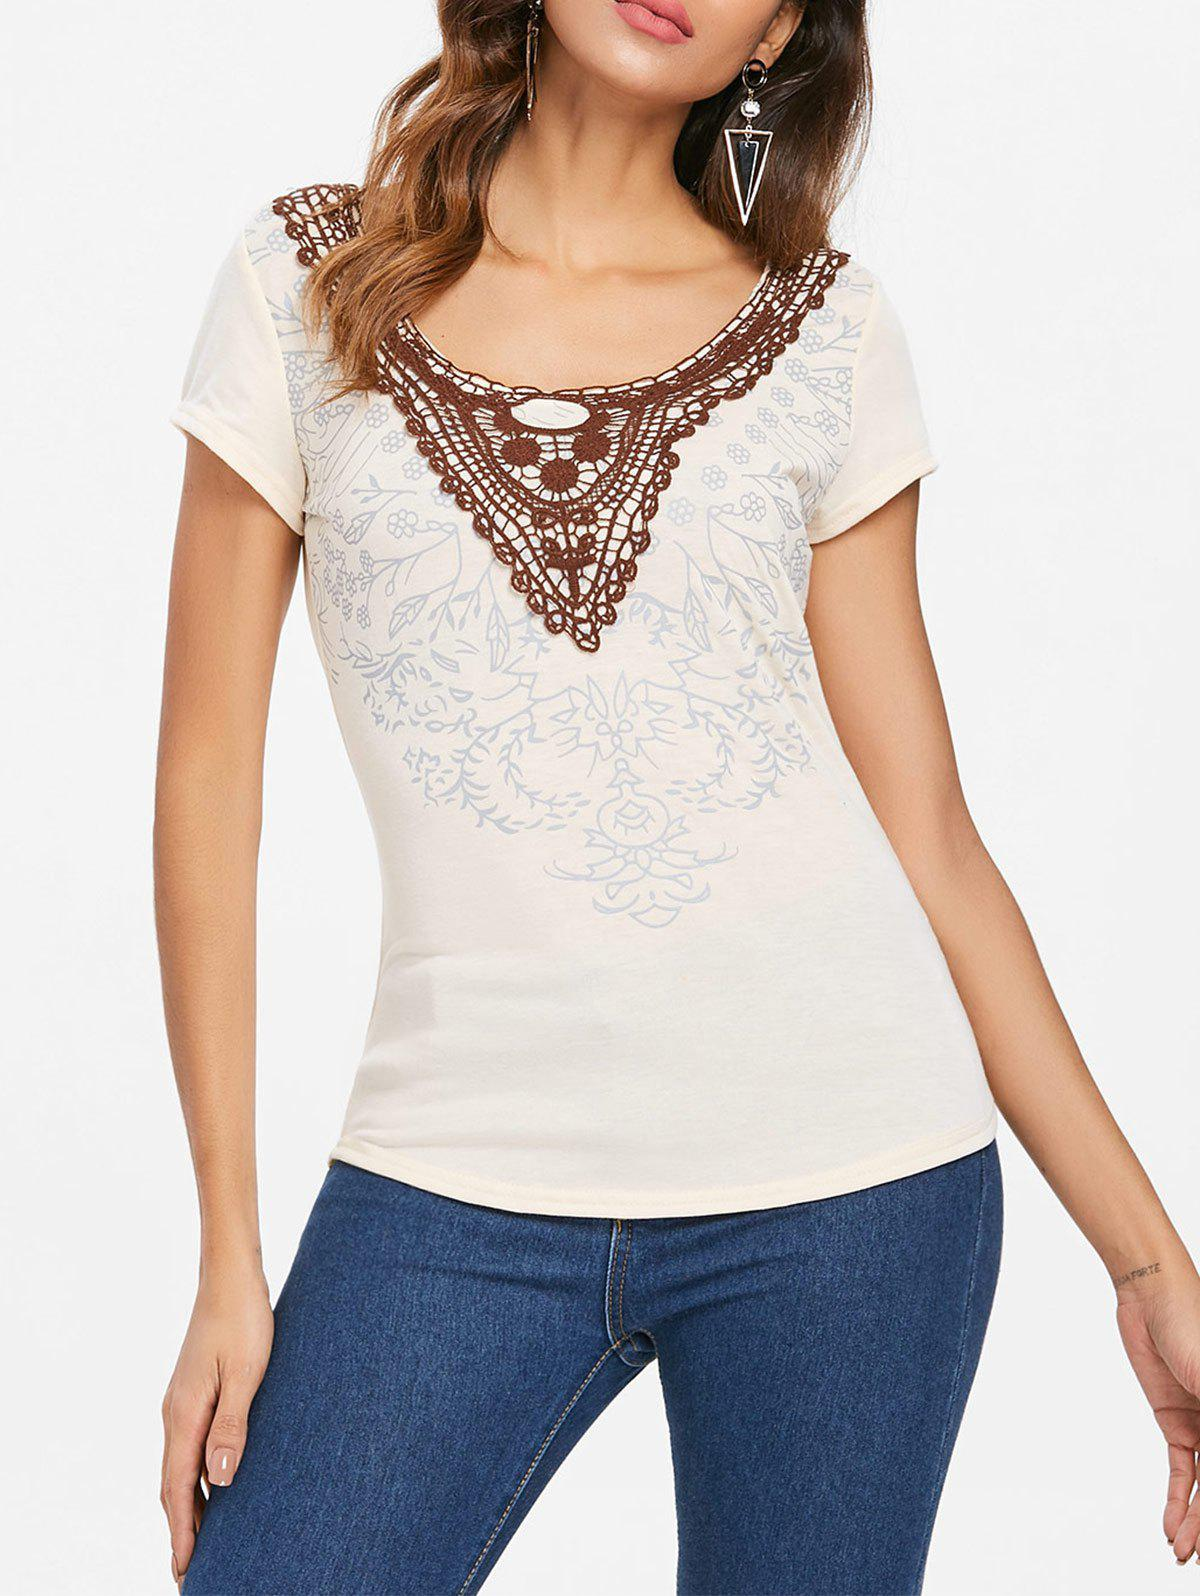 Sale Scoop Neck Applique T-shirt